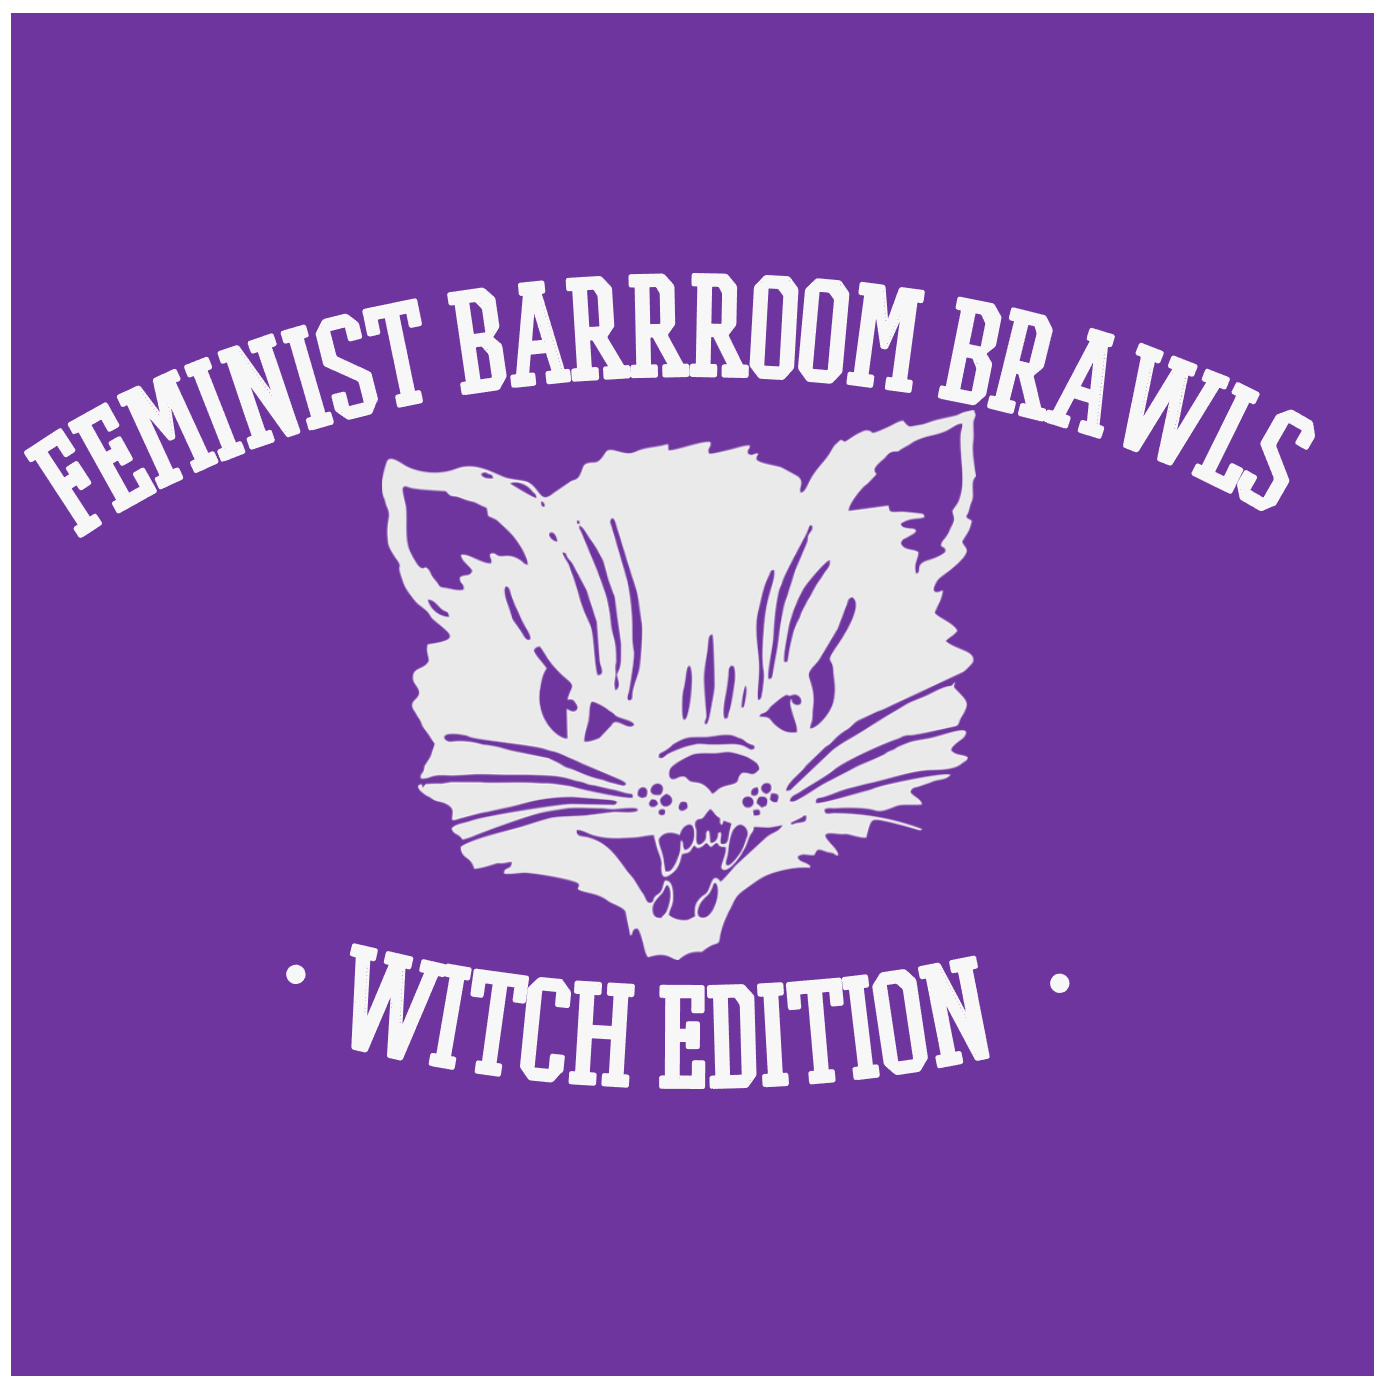 A purple background with a white hissing cat cartoon on it surrounde by the text: Feminist Barrroom Brawls Witch Edition